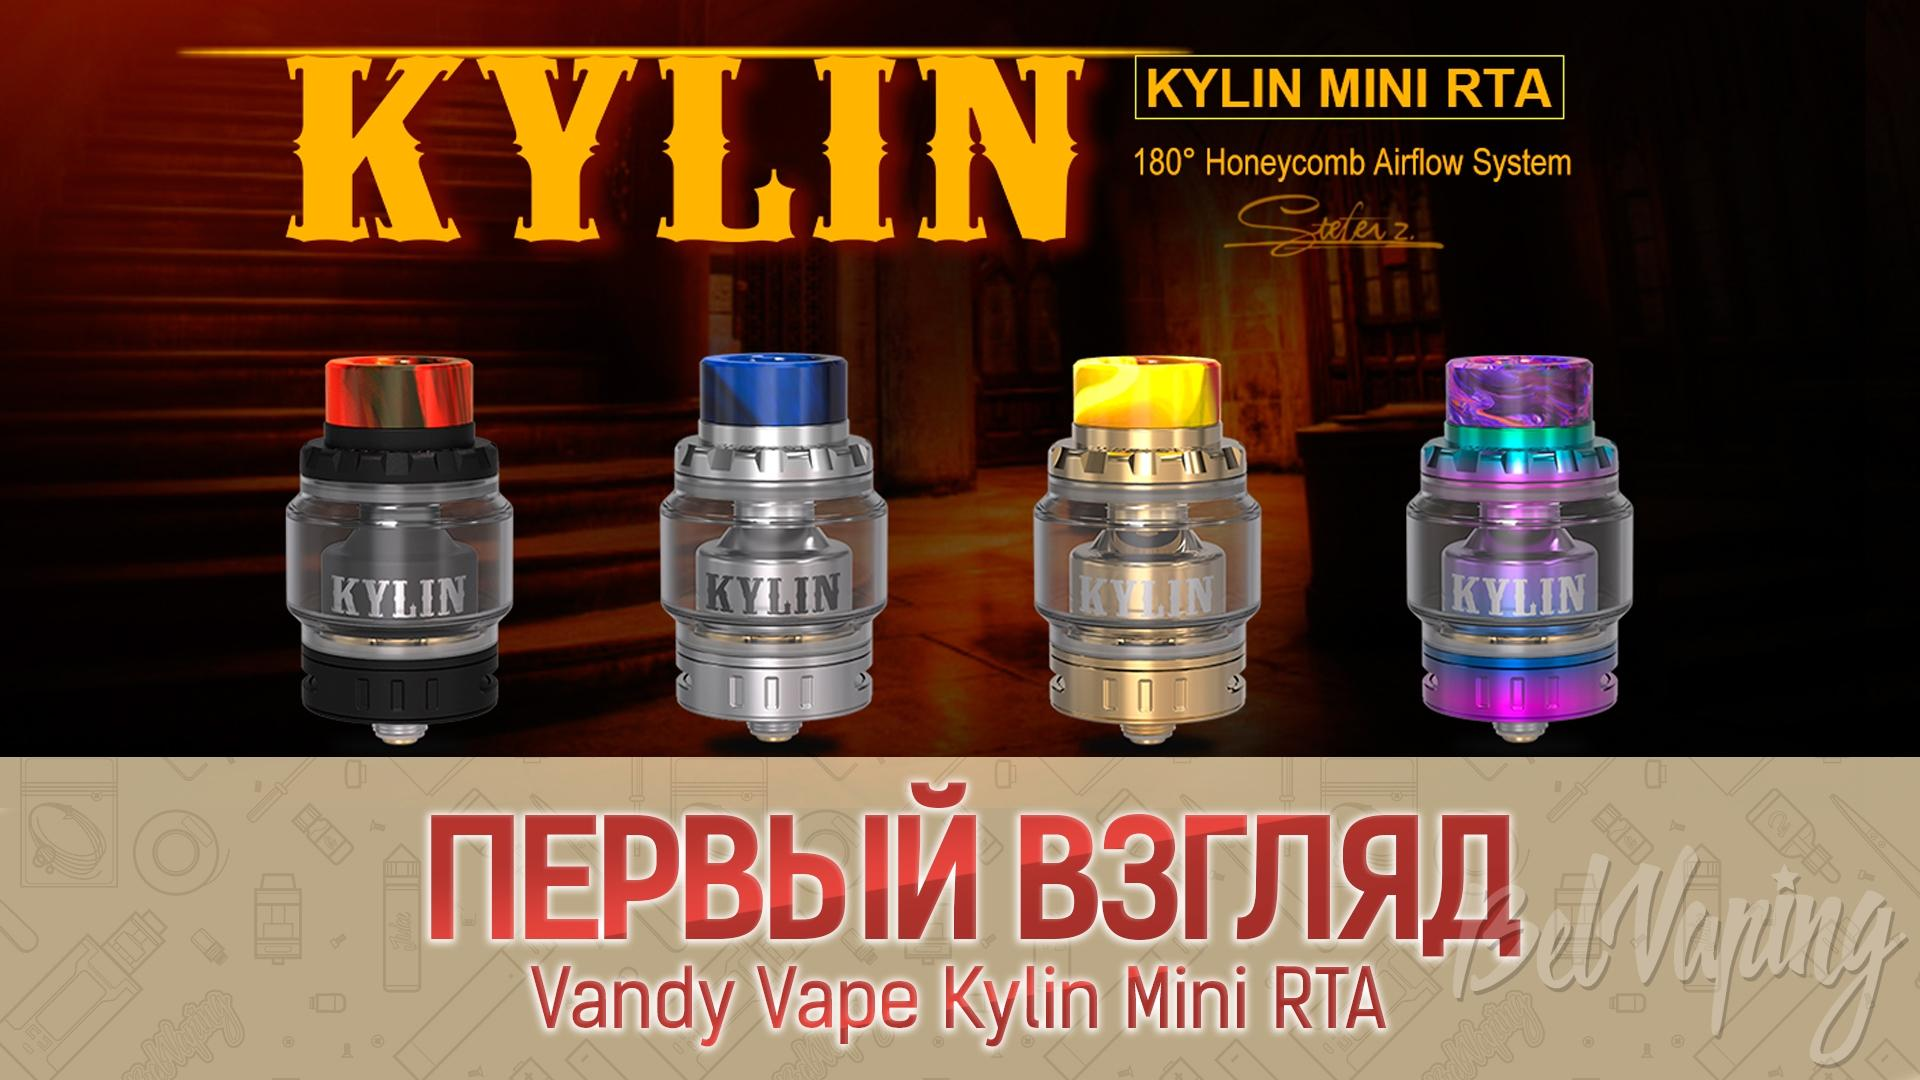 Vandy Vape Kylin Mini RTA. Первый взгляд